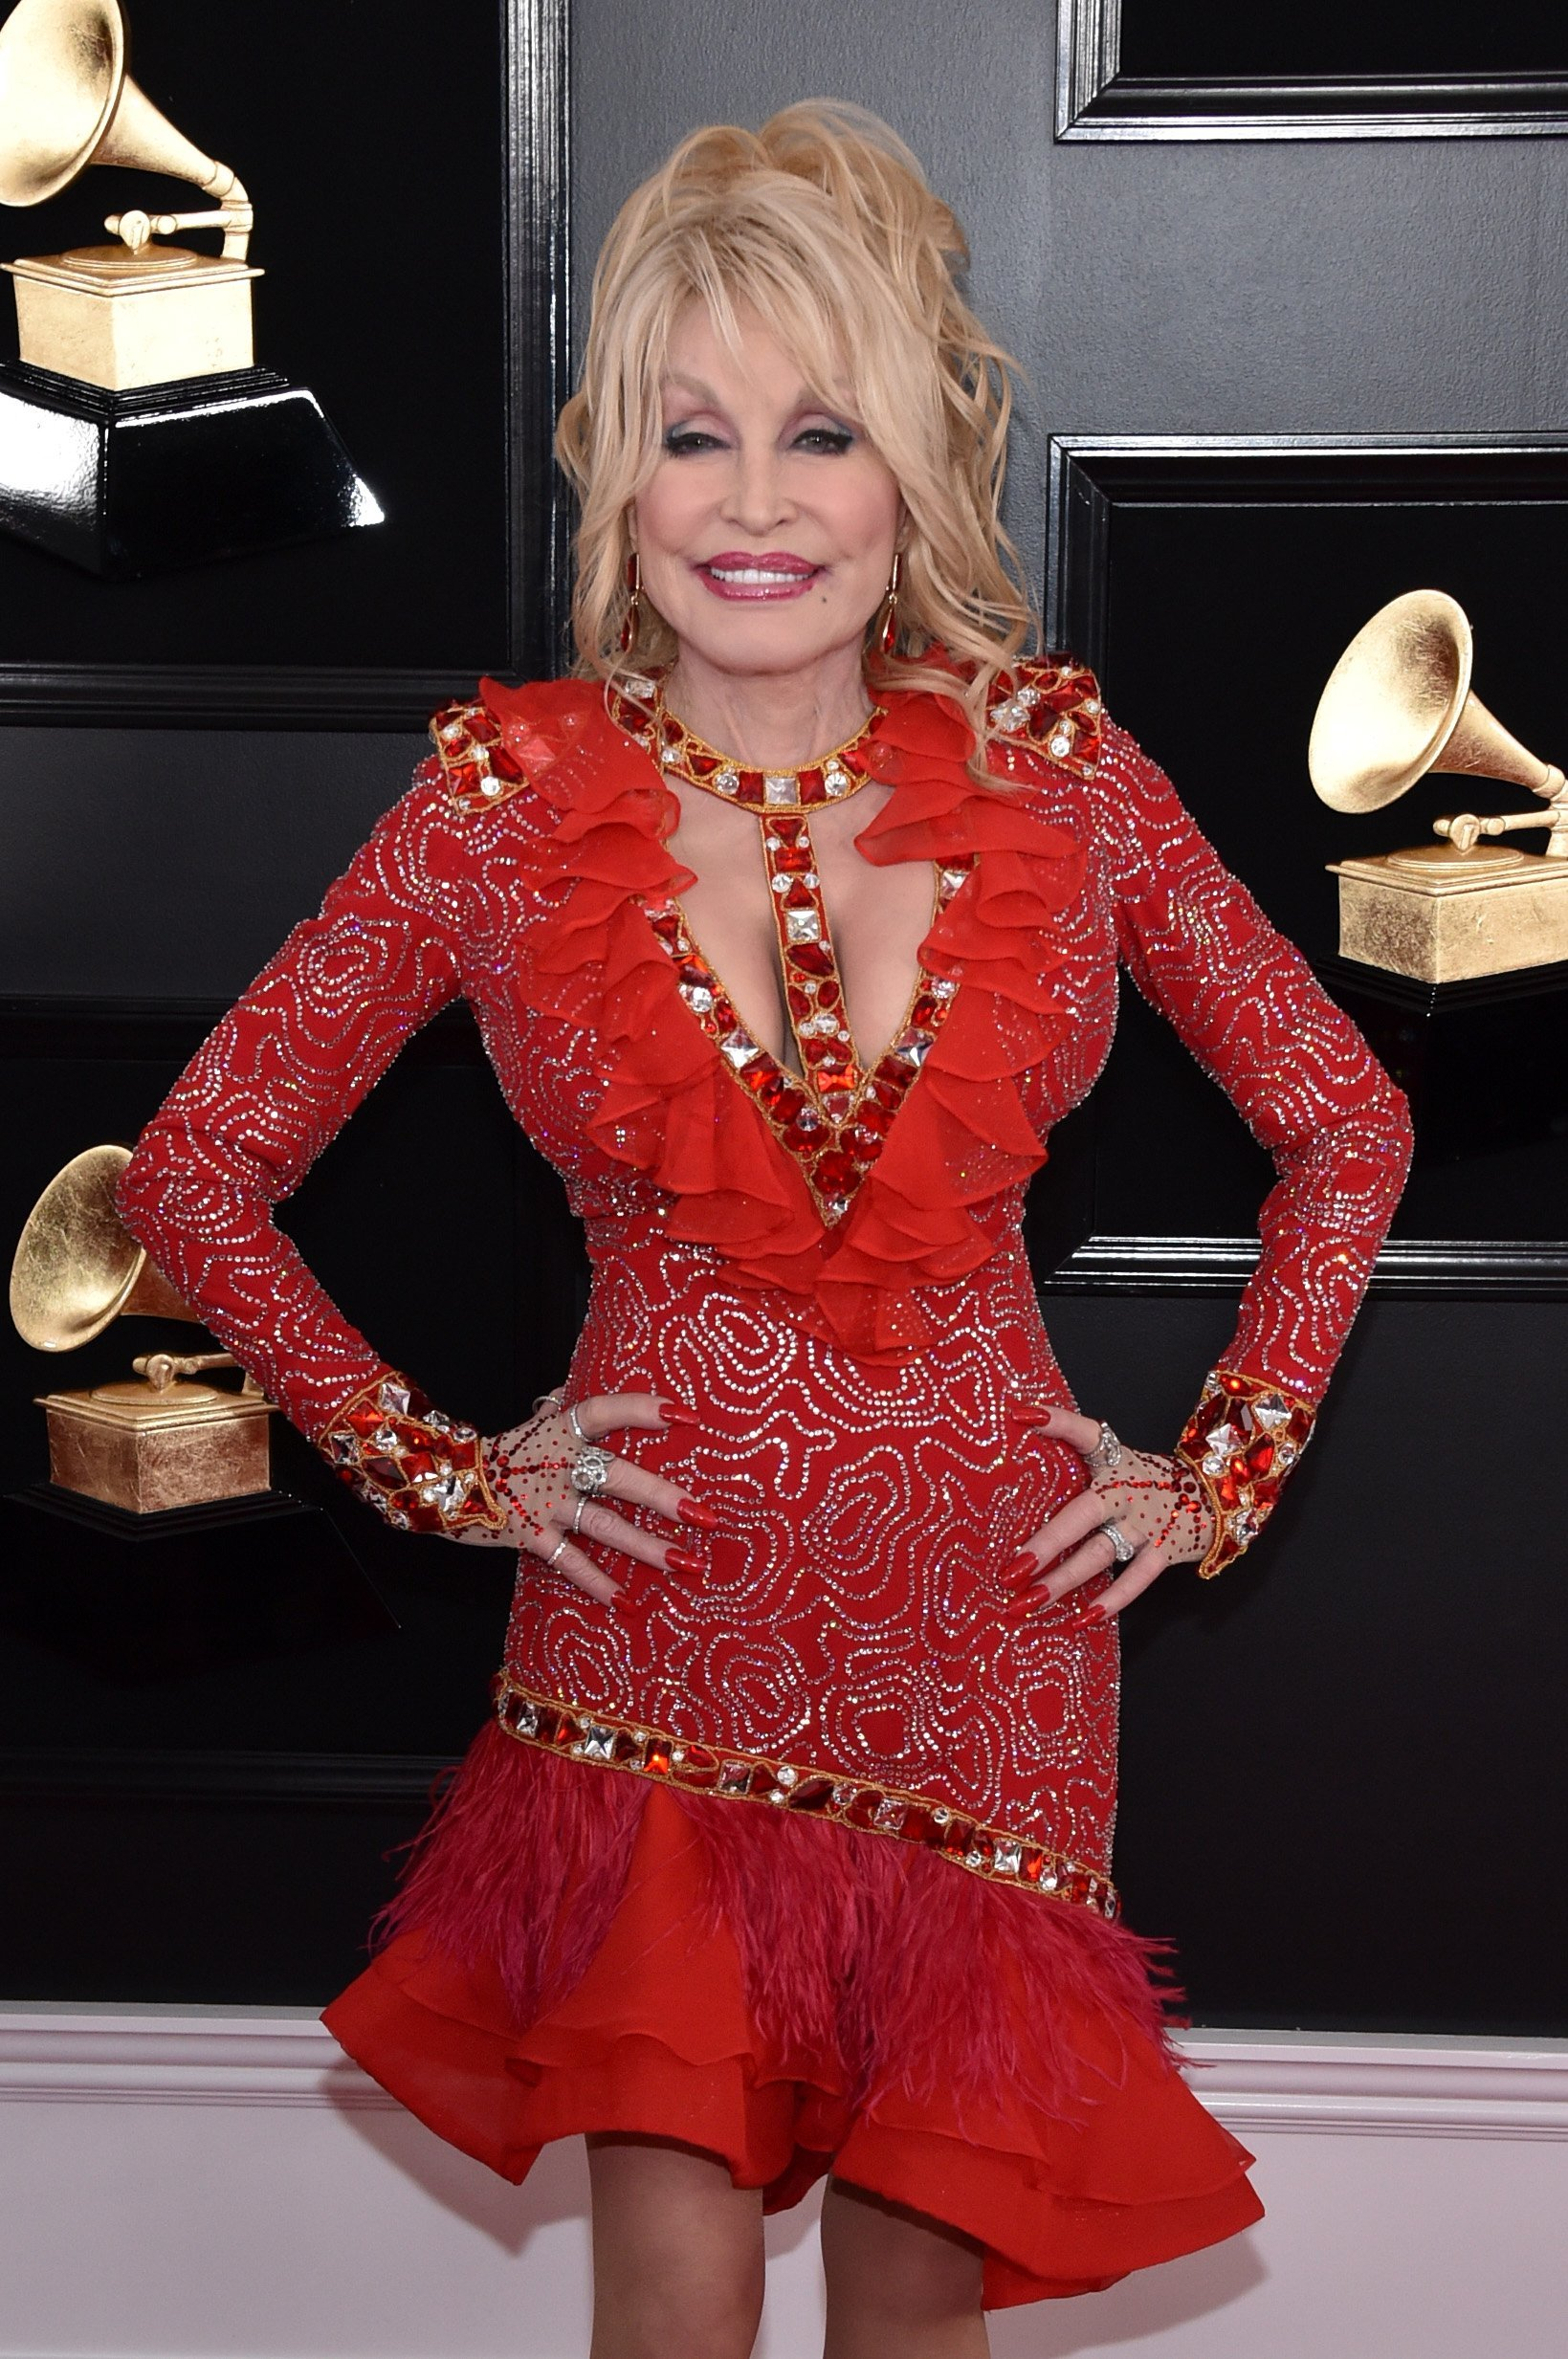 Dolly Parton posing for the photographers at the 61st Annual Grammy Awards at Staples Center in Los Angeles, California. | Photo: Getty Images.